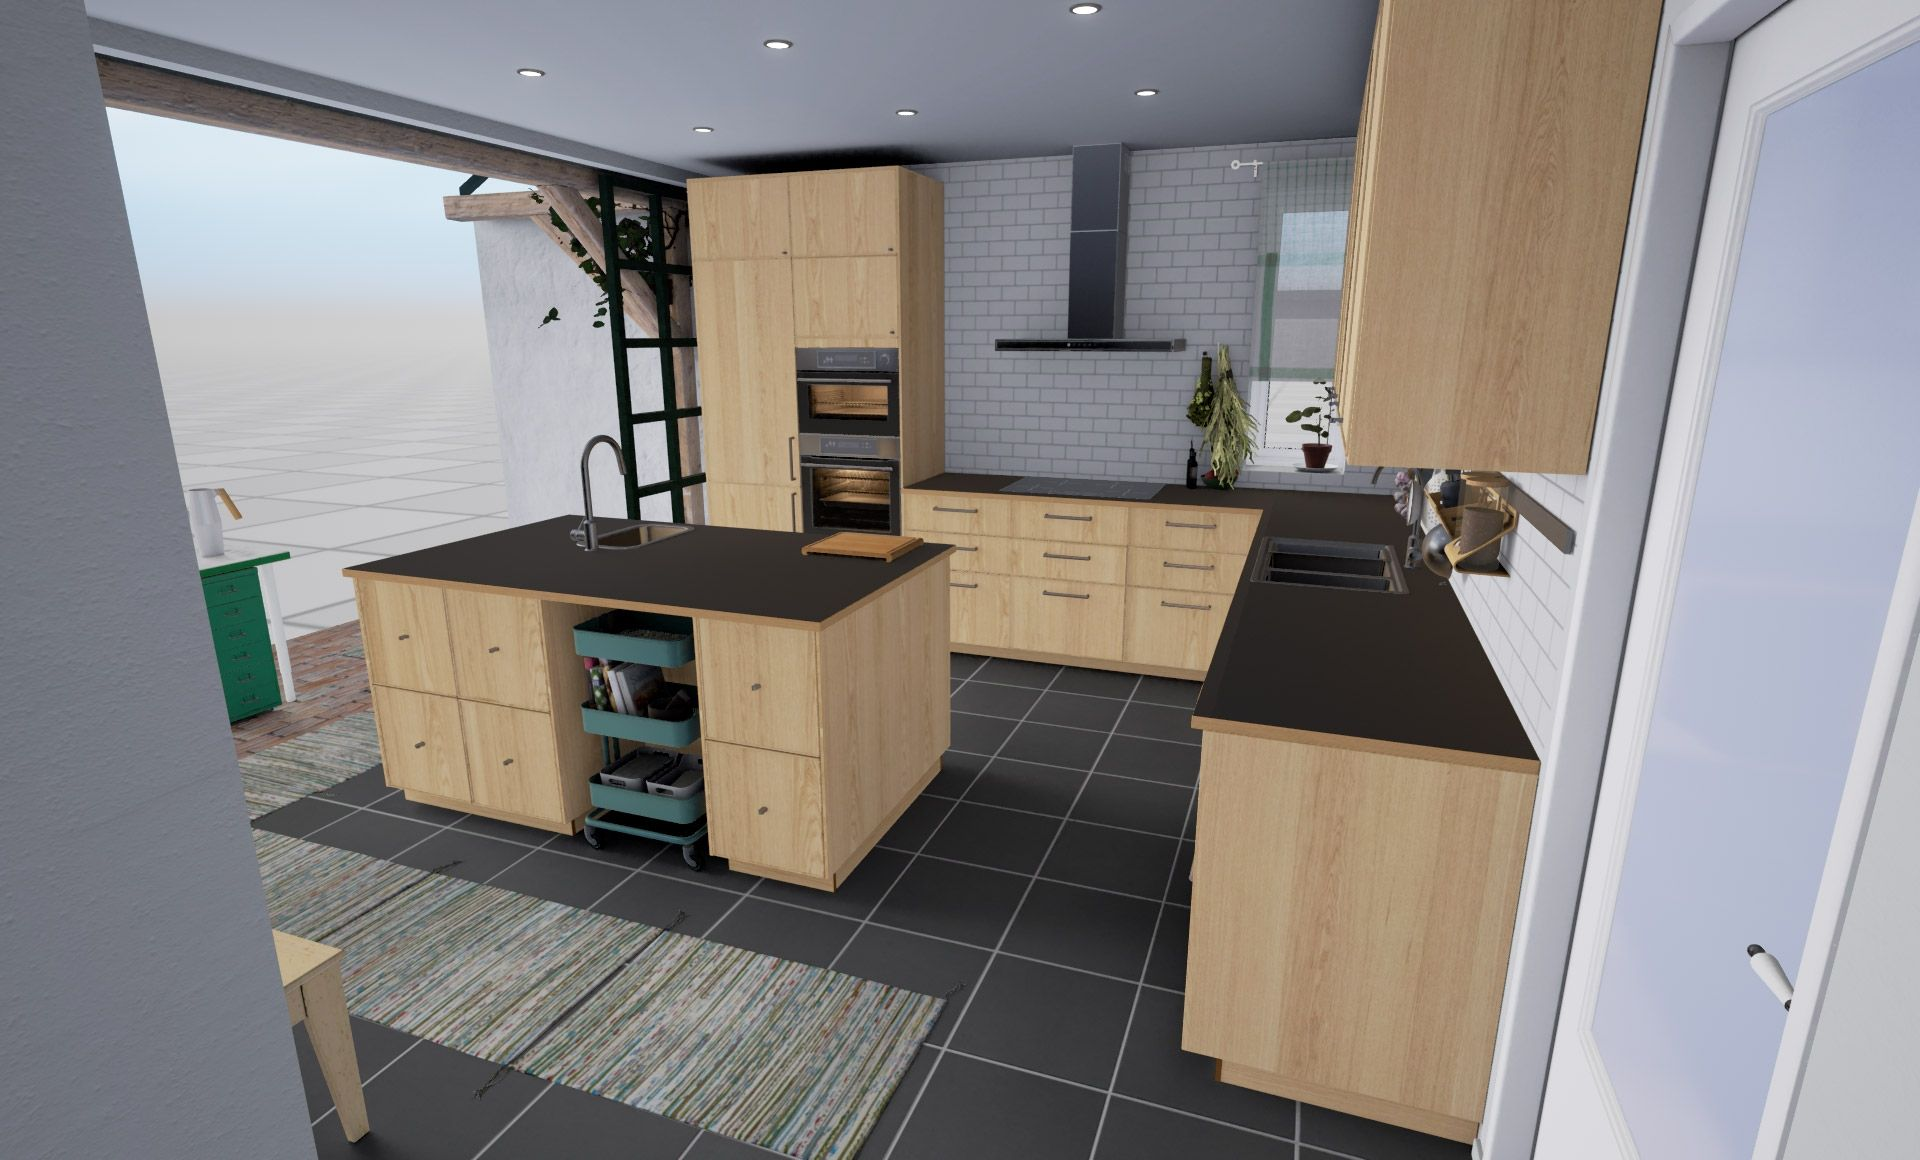 Remodel Kitchen Or Bathroom First Httpsodakausticacom - Where to start when remodeling a kitchen